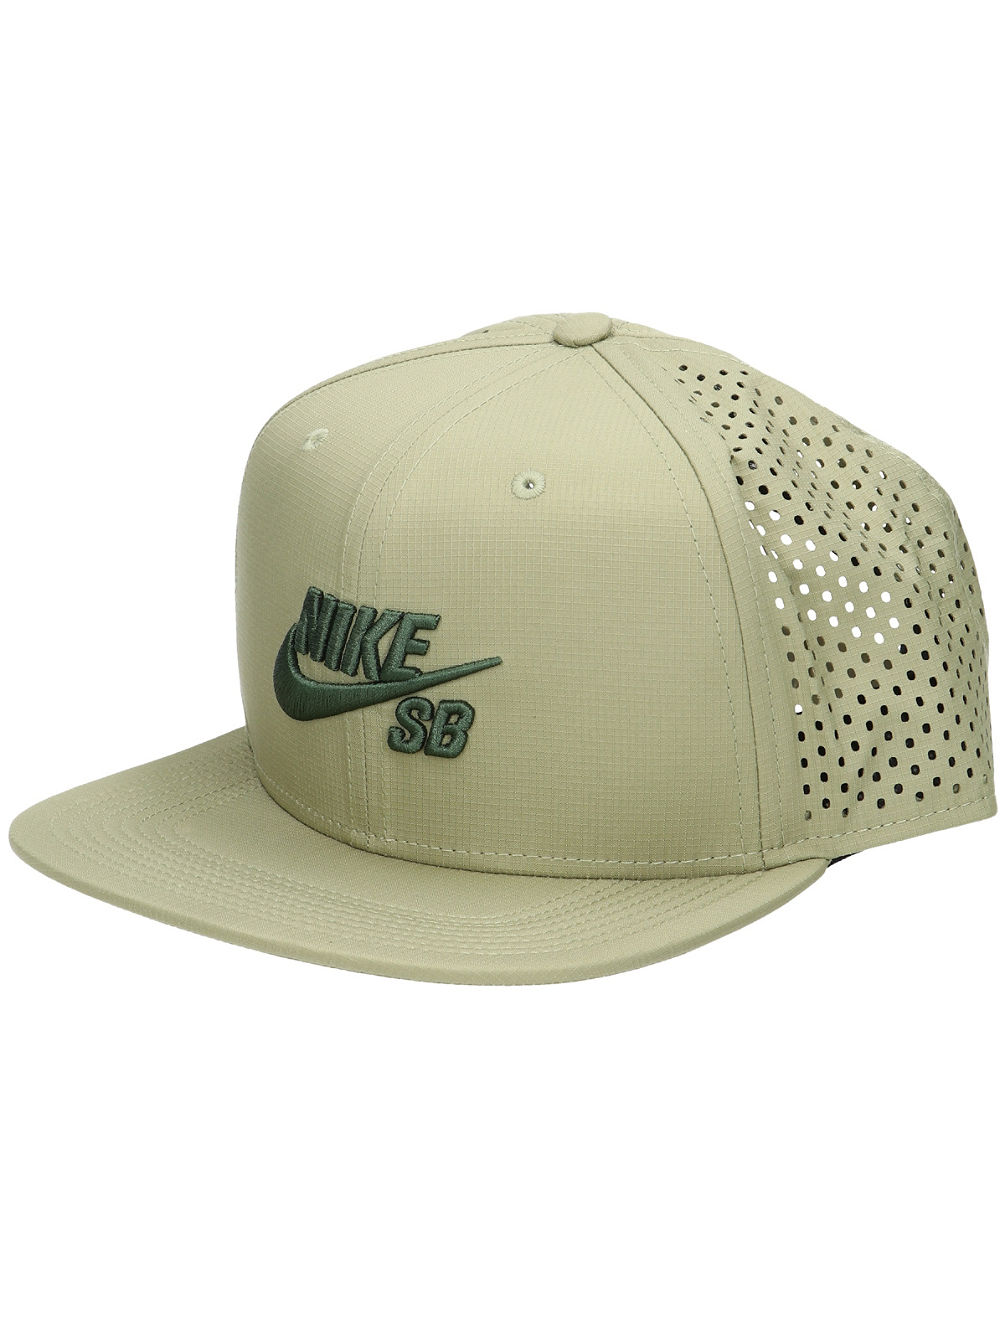 01baff656a1 Buy Nike SB Performance Trucker Cap online at Blue Tomato